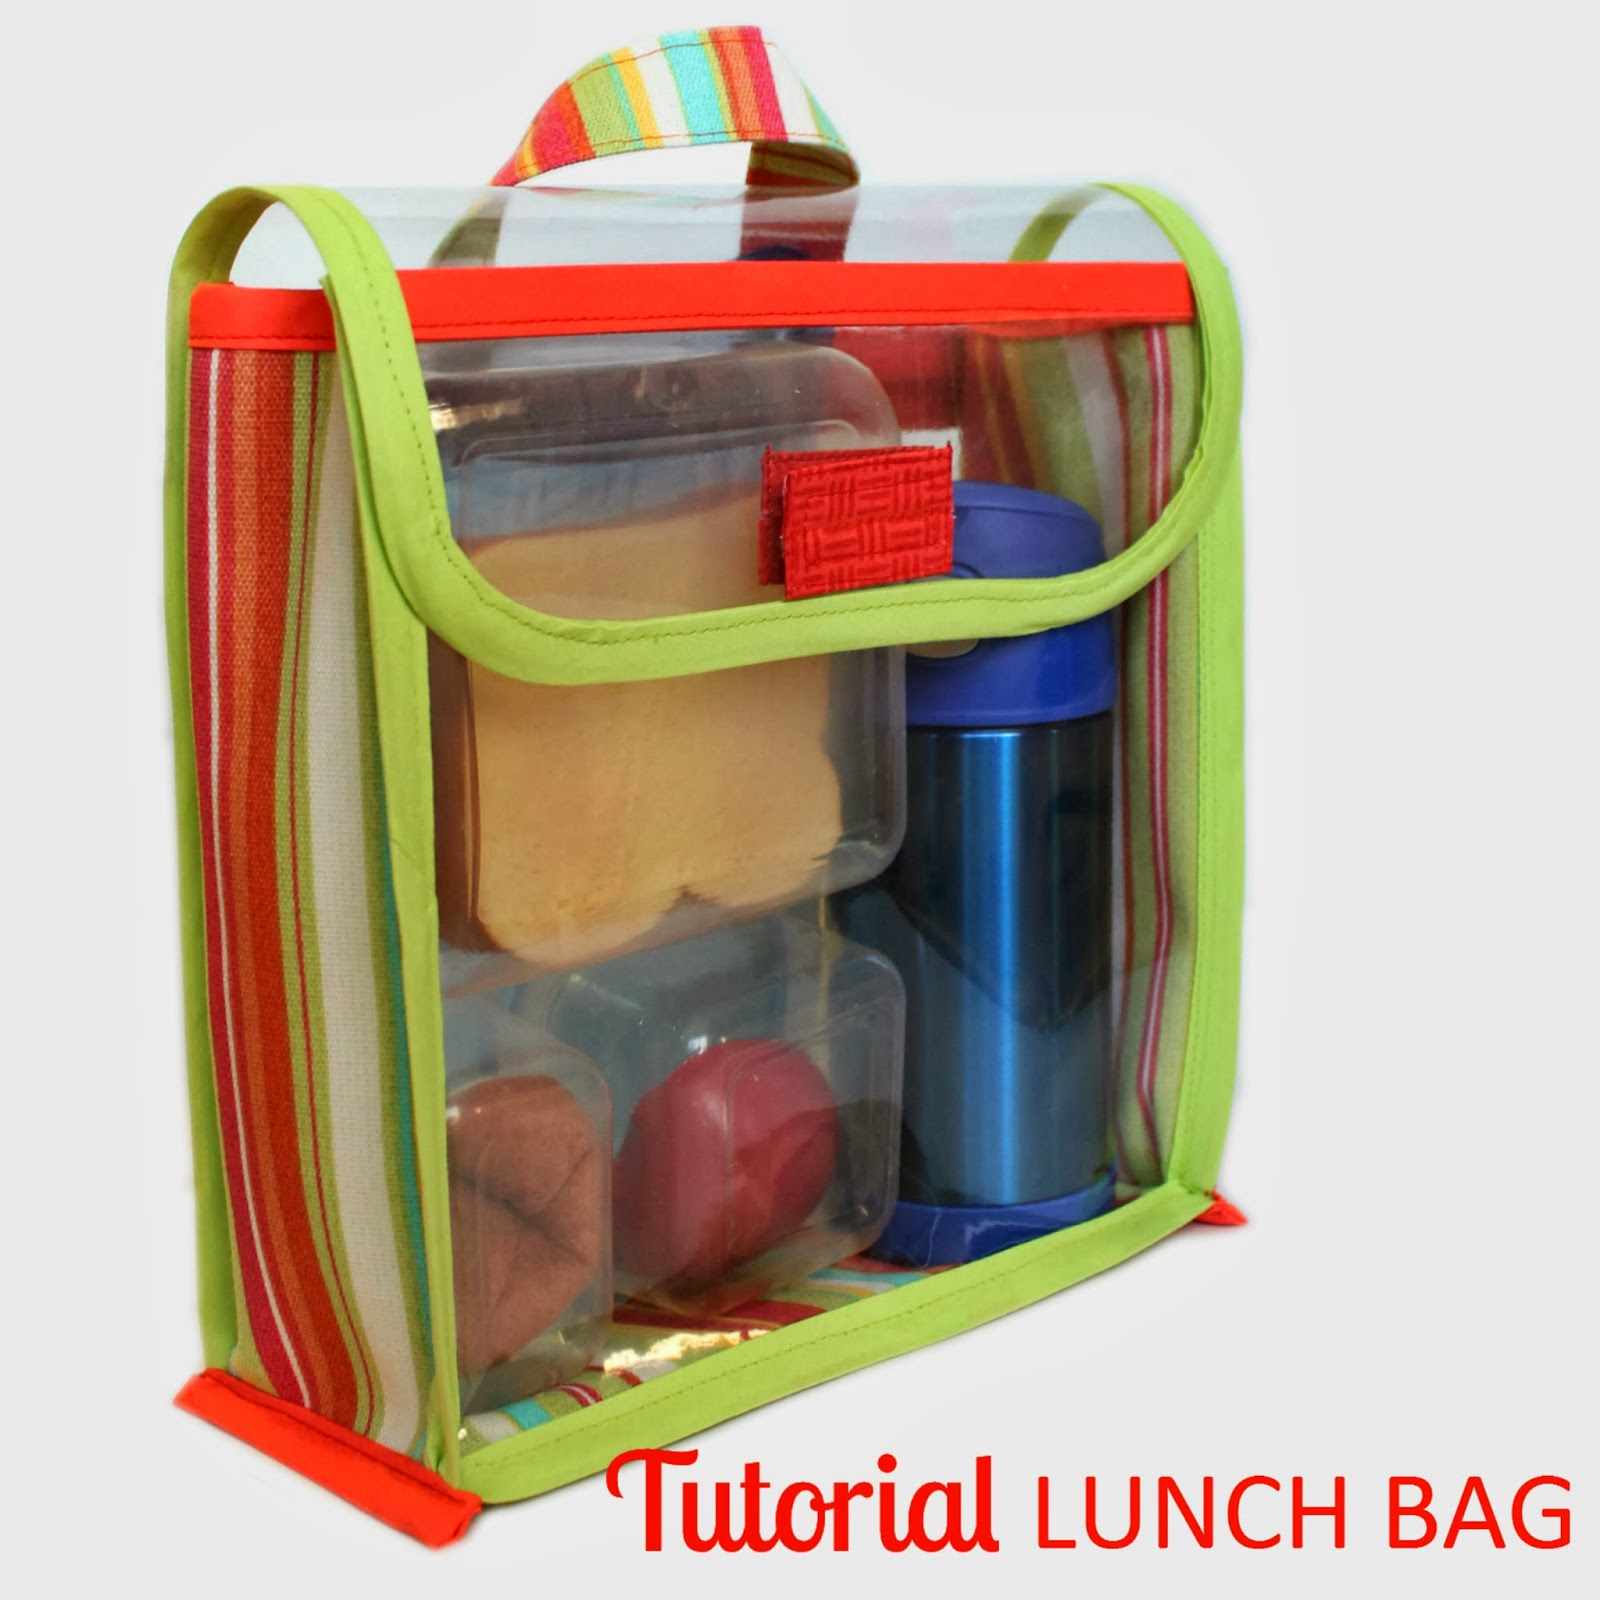 Tutorial: Vinyl Lunch Bag | Learn how to sew a simple to open, clear vinyl lunch bag. | The Inspired Wren